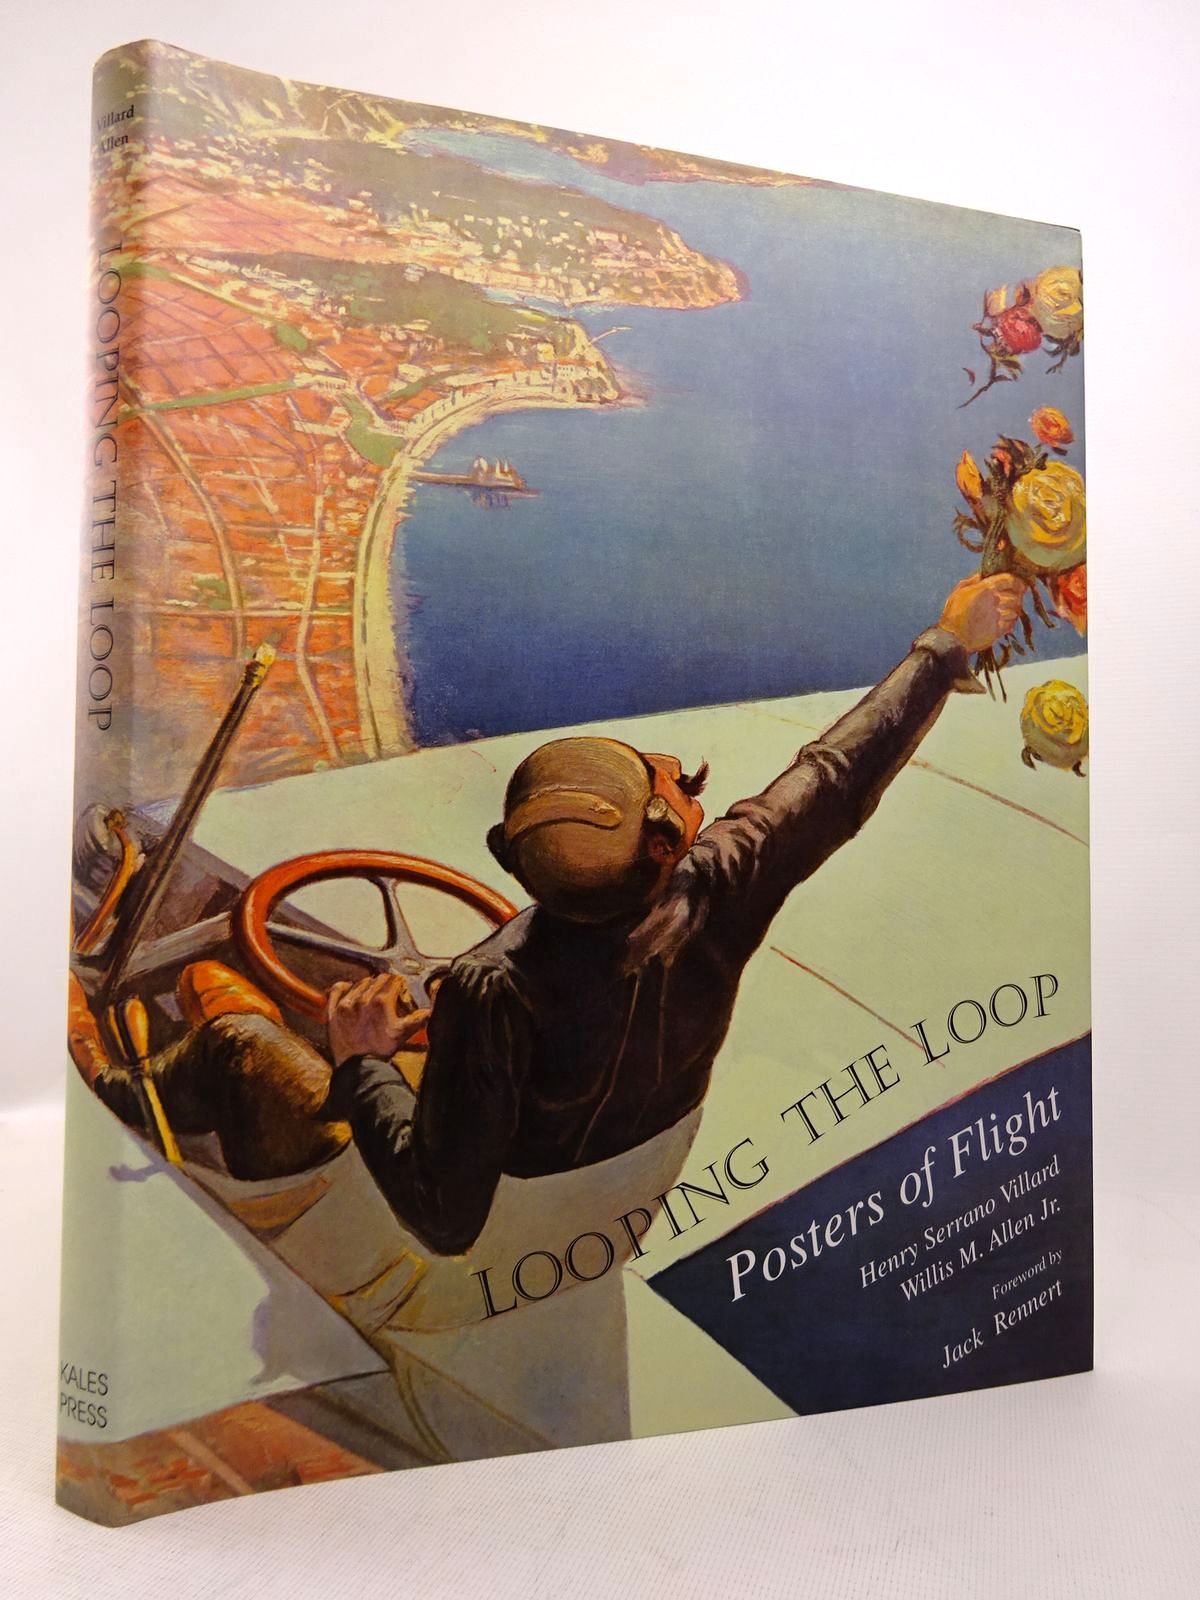 Photo of LOOPING THE LOOP: POSTERS OF FLIGHT written by Villard, Henry Serrano<br />Allen, Willis M. published by Kales Press (STOCK CODE: 1816820)  for sale by Stella & Rose's Books